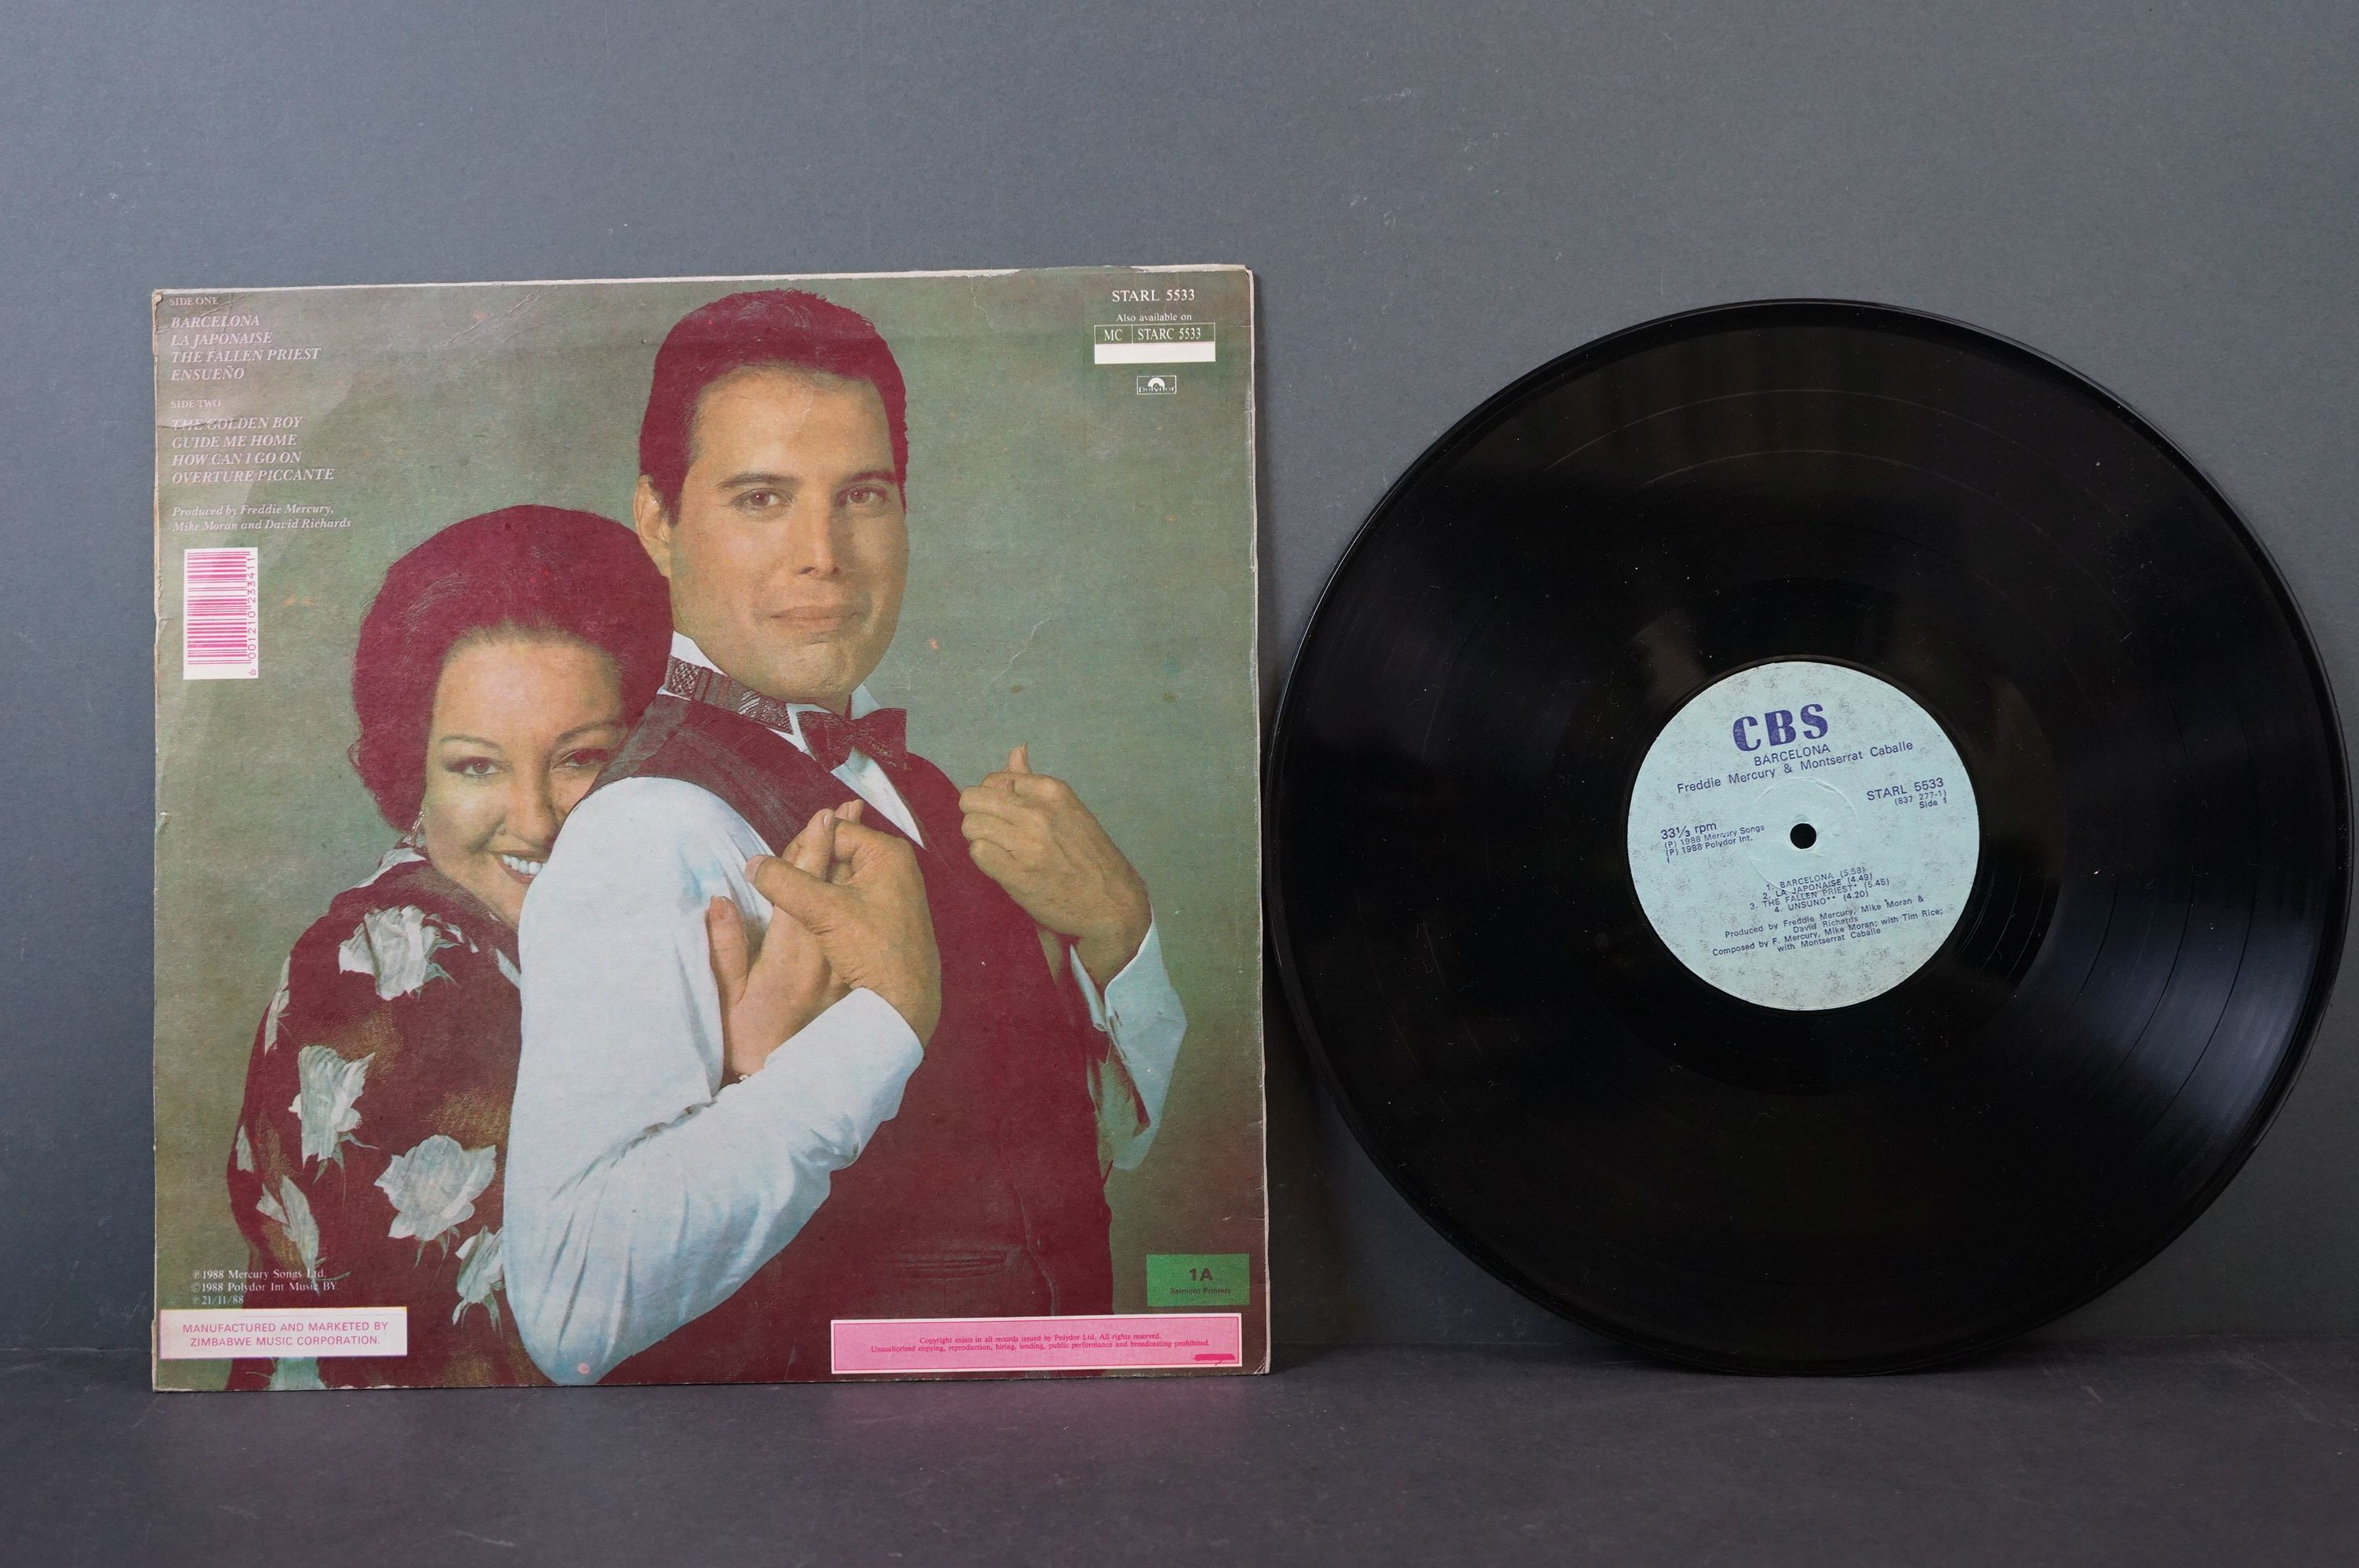 Vinyl - Psych / Rock / Garage - Four scarce African Pressing original albums to include Nazz - - Image 9 of 9